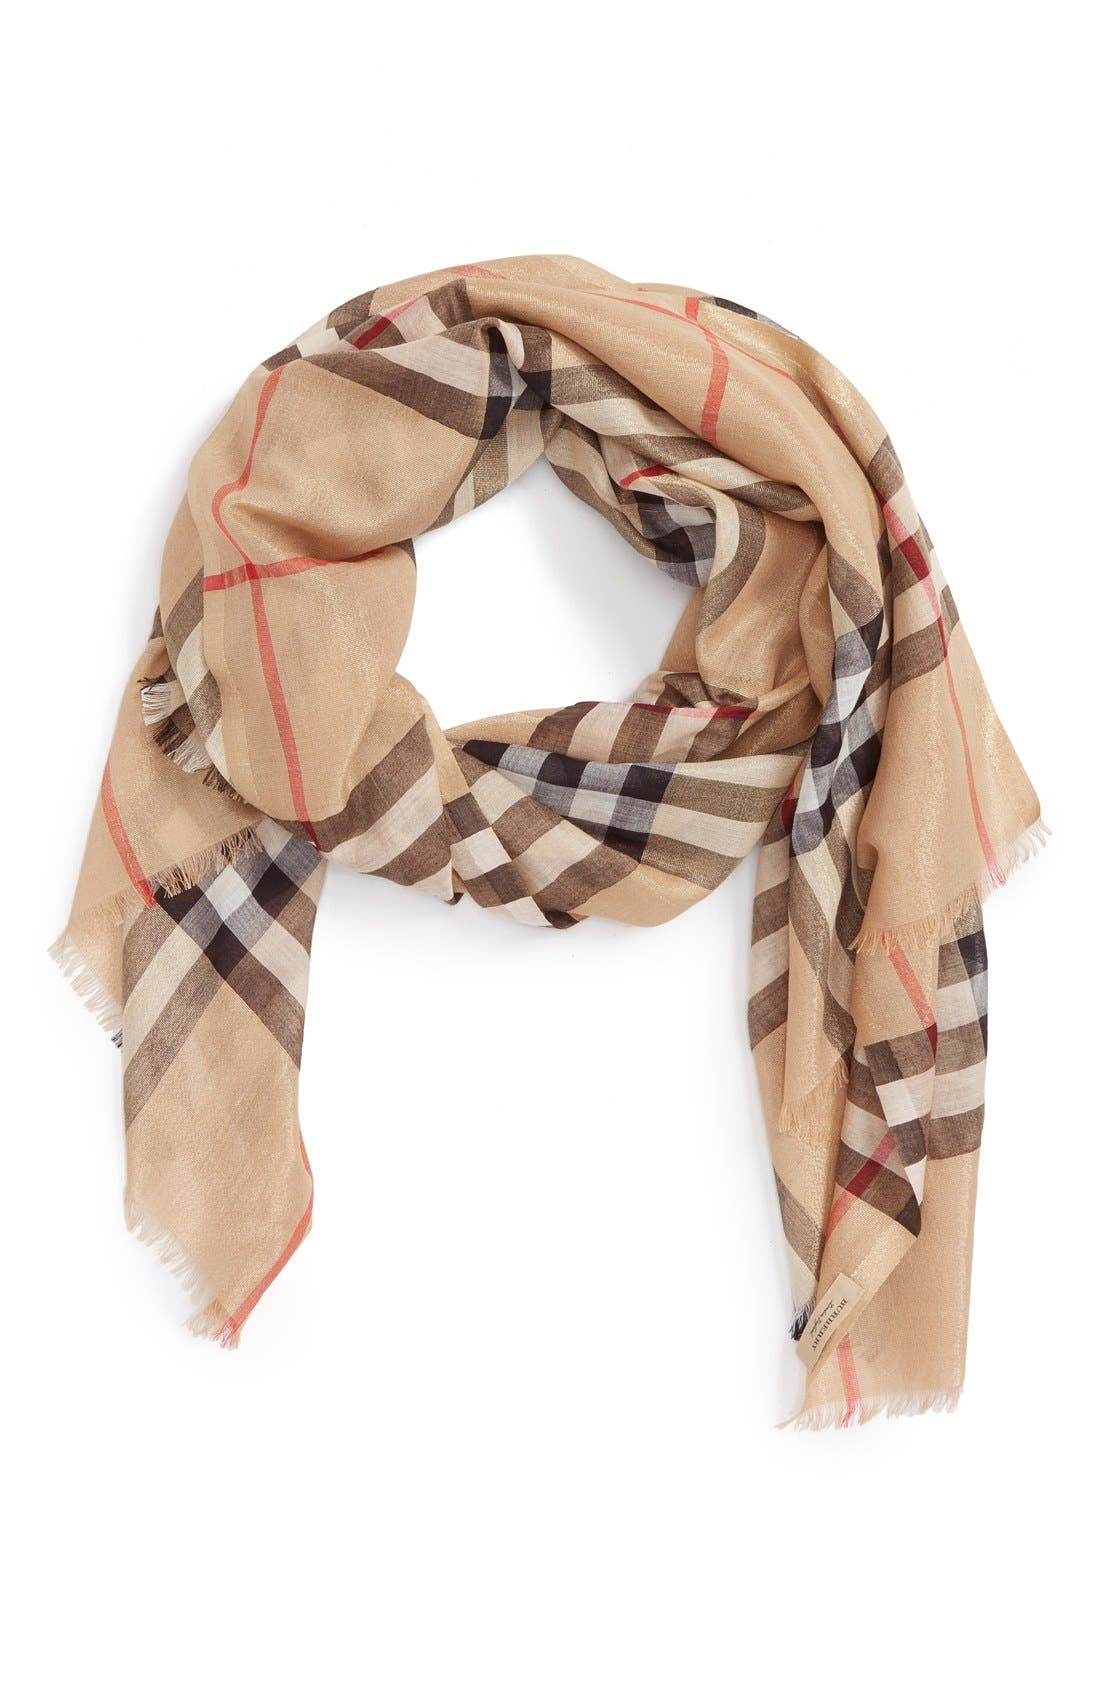 Giant Check Scarf,                             Main thumbnail 1, color,                             Camel/ Gold